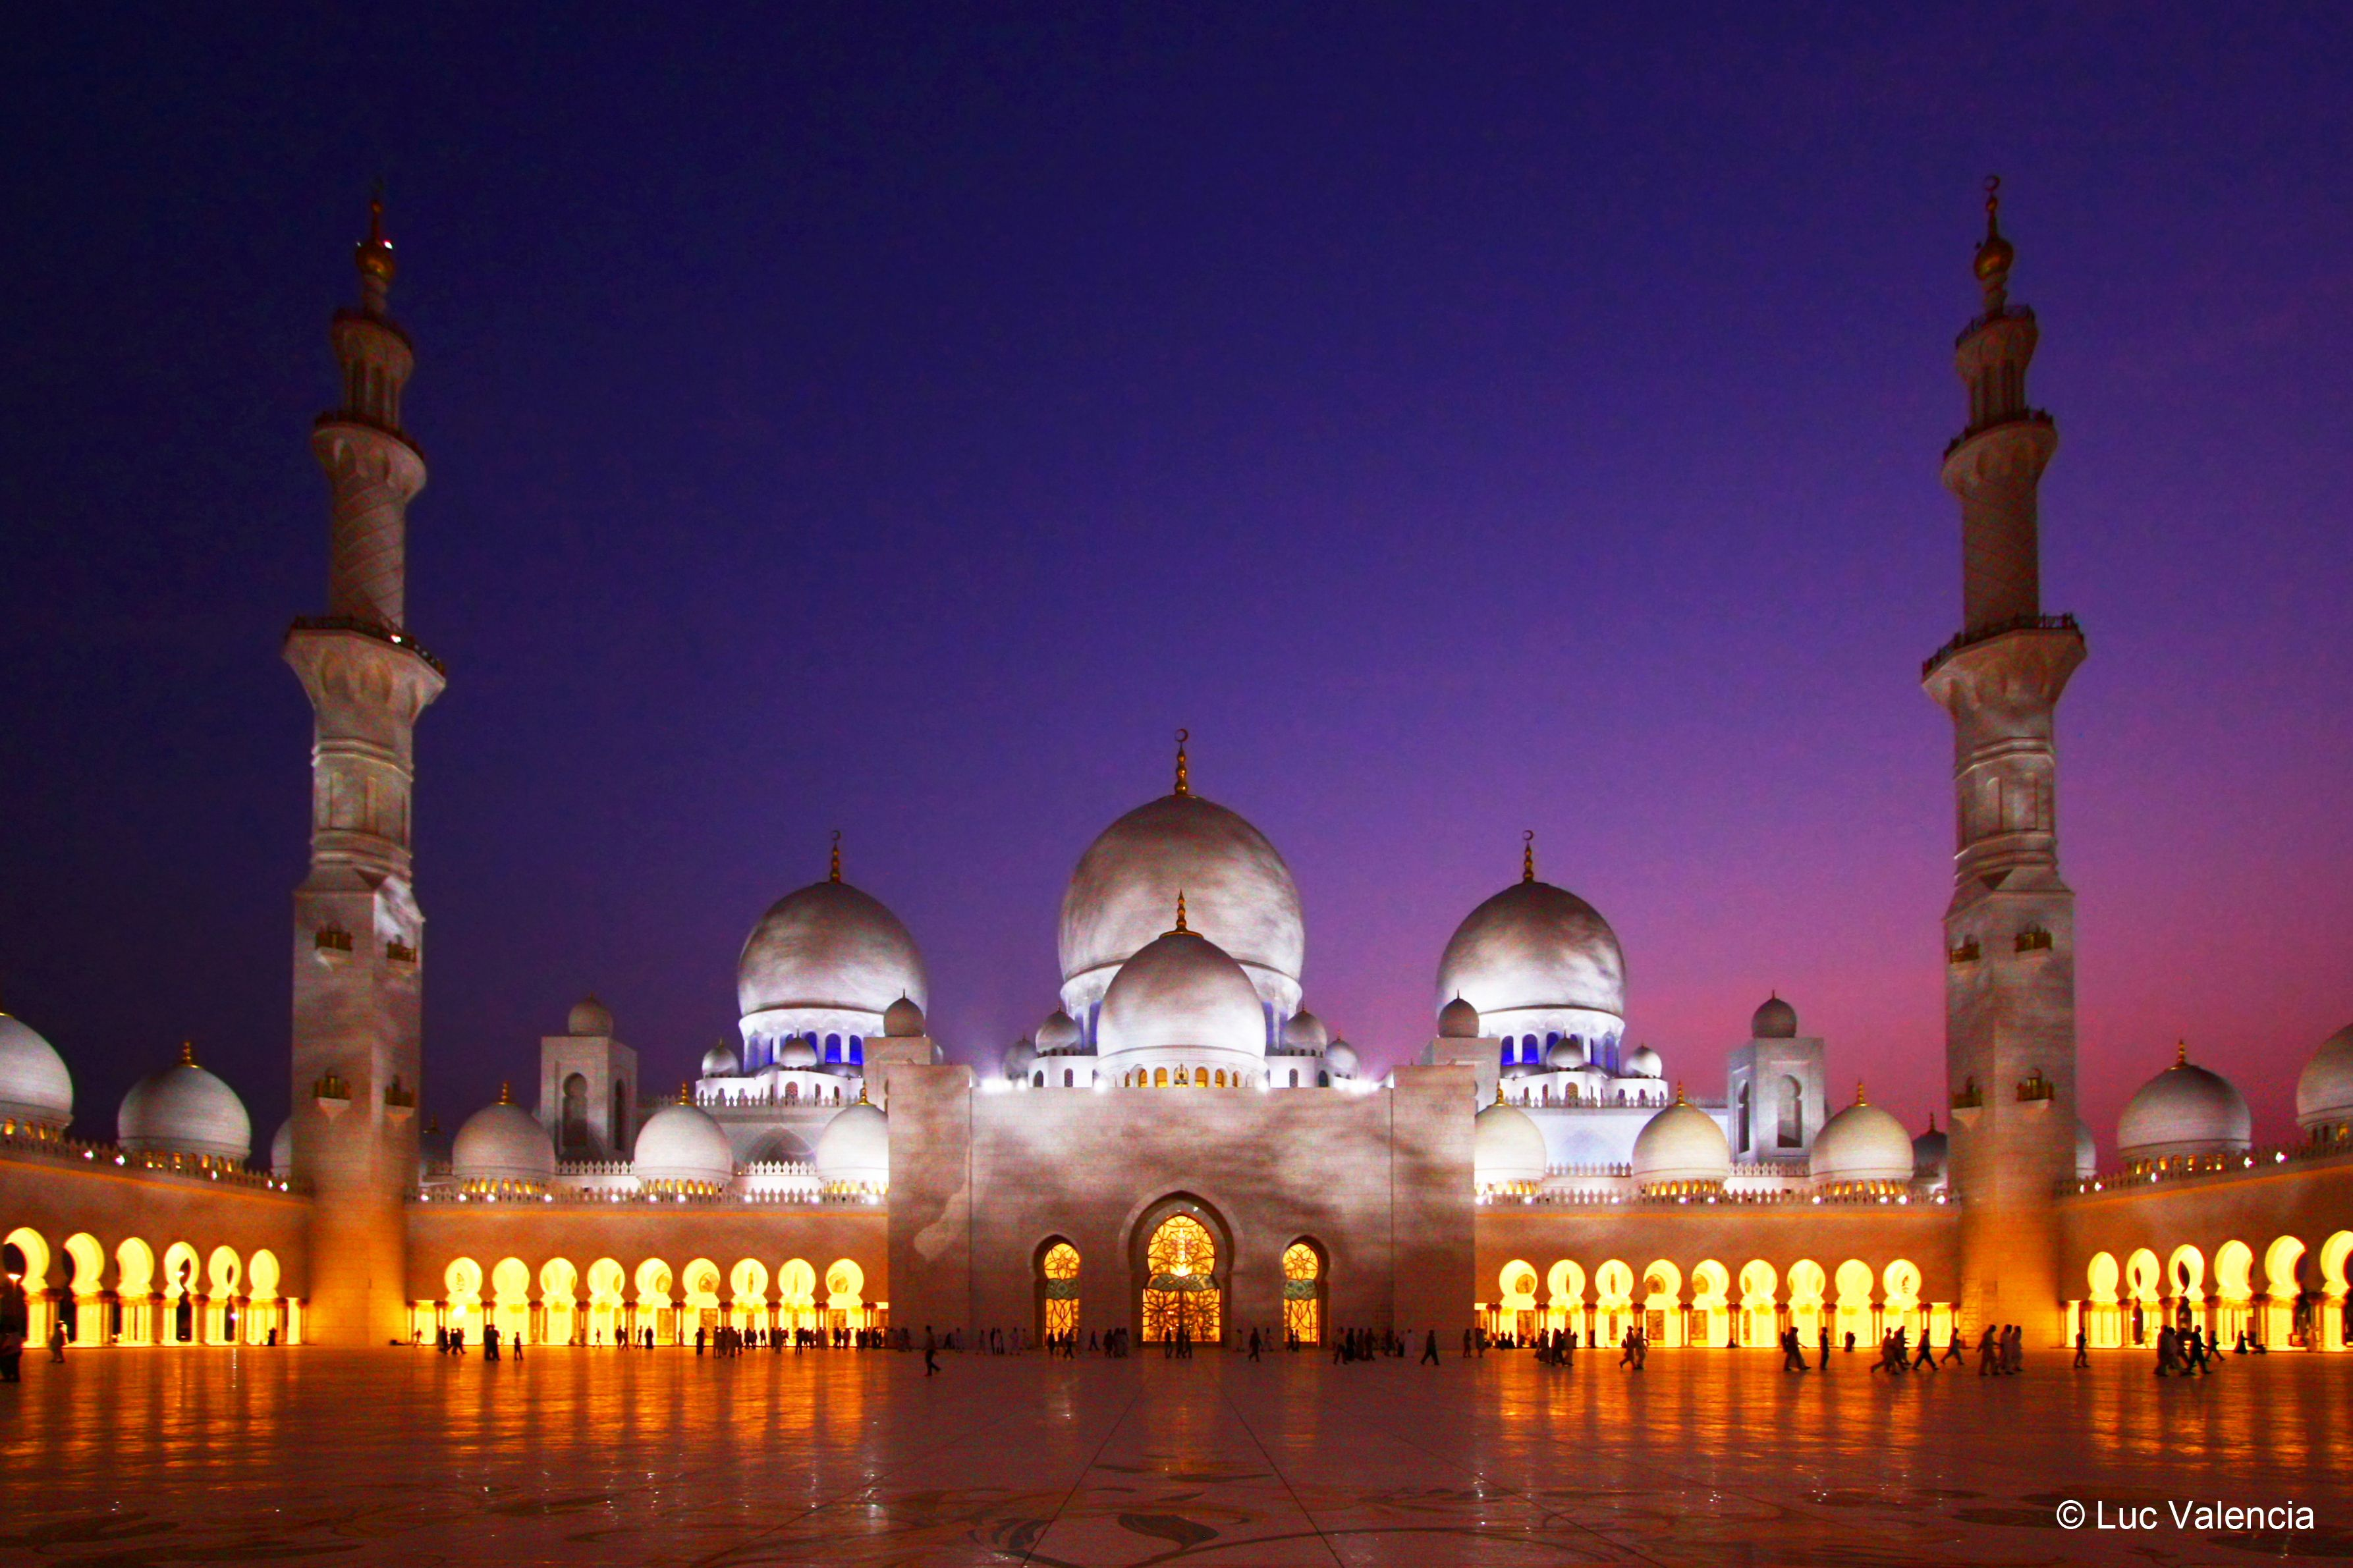 Sheikh Zayed Grand Mosque Abu Dhabi Uae Take Me To The Middle East Pinterest Grand